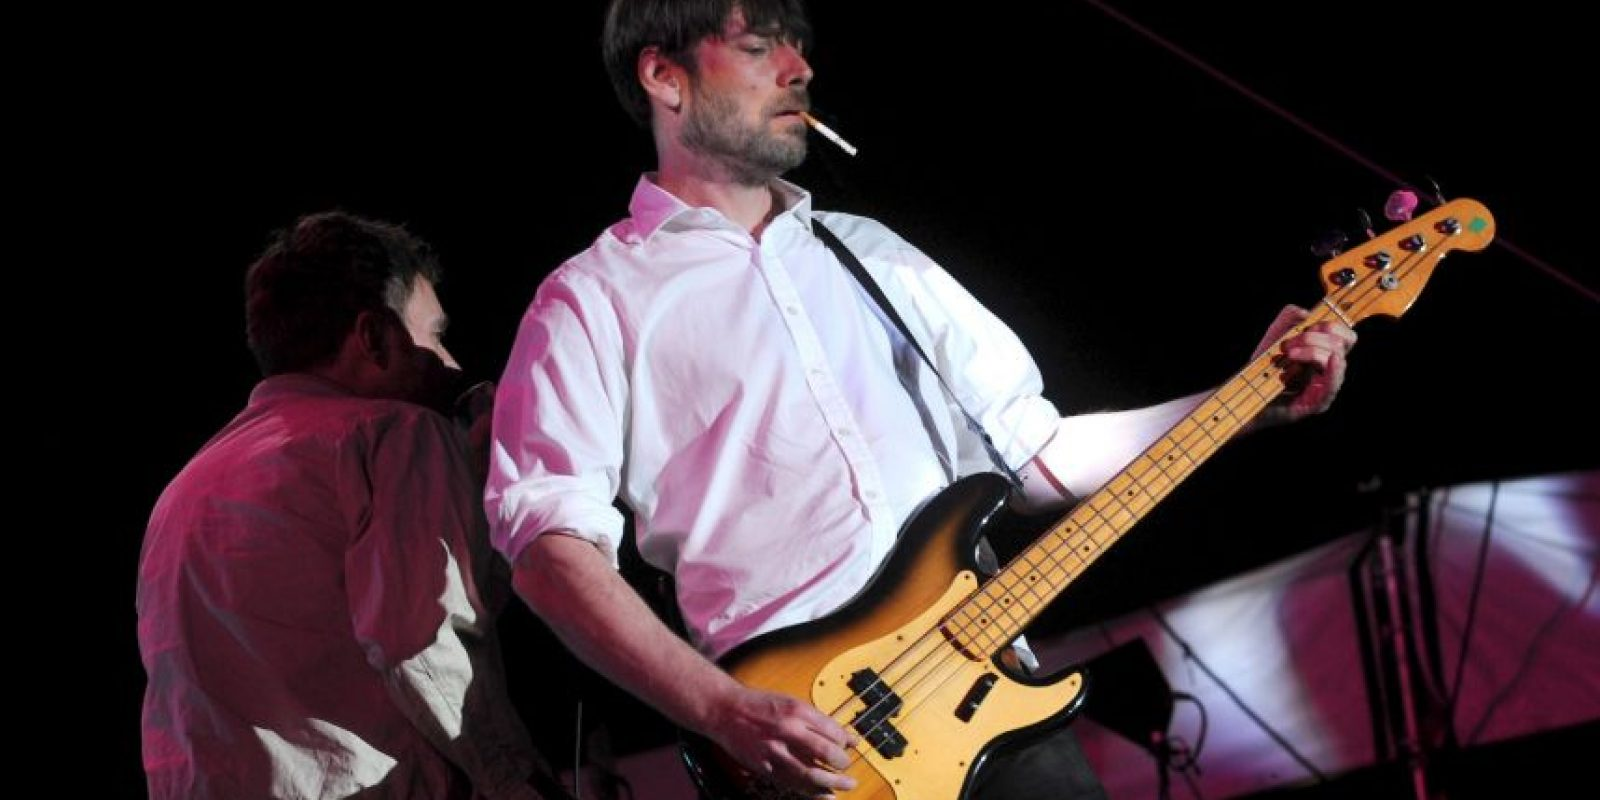 El bajista Alex James Foto: Getty Images